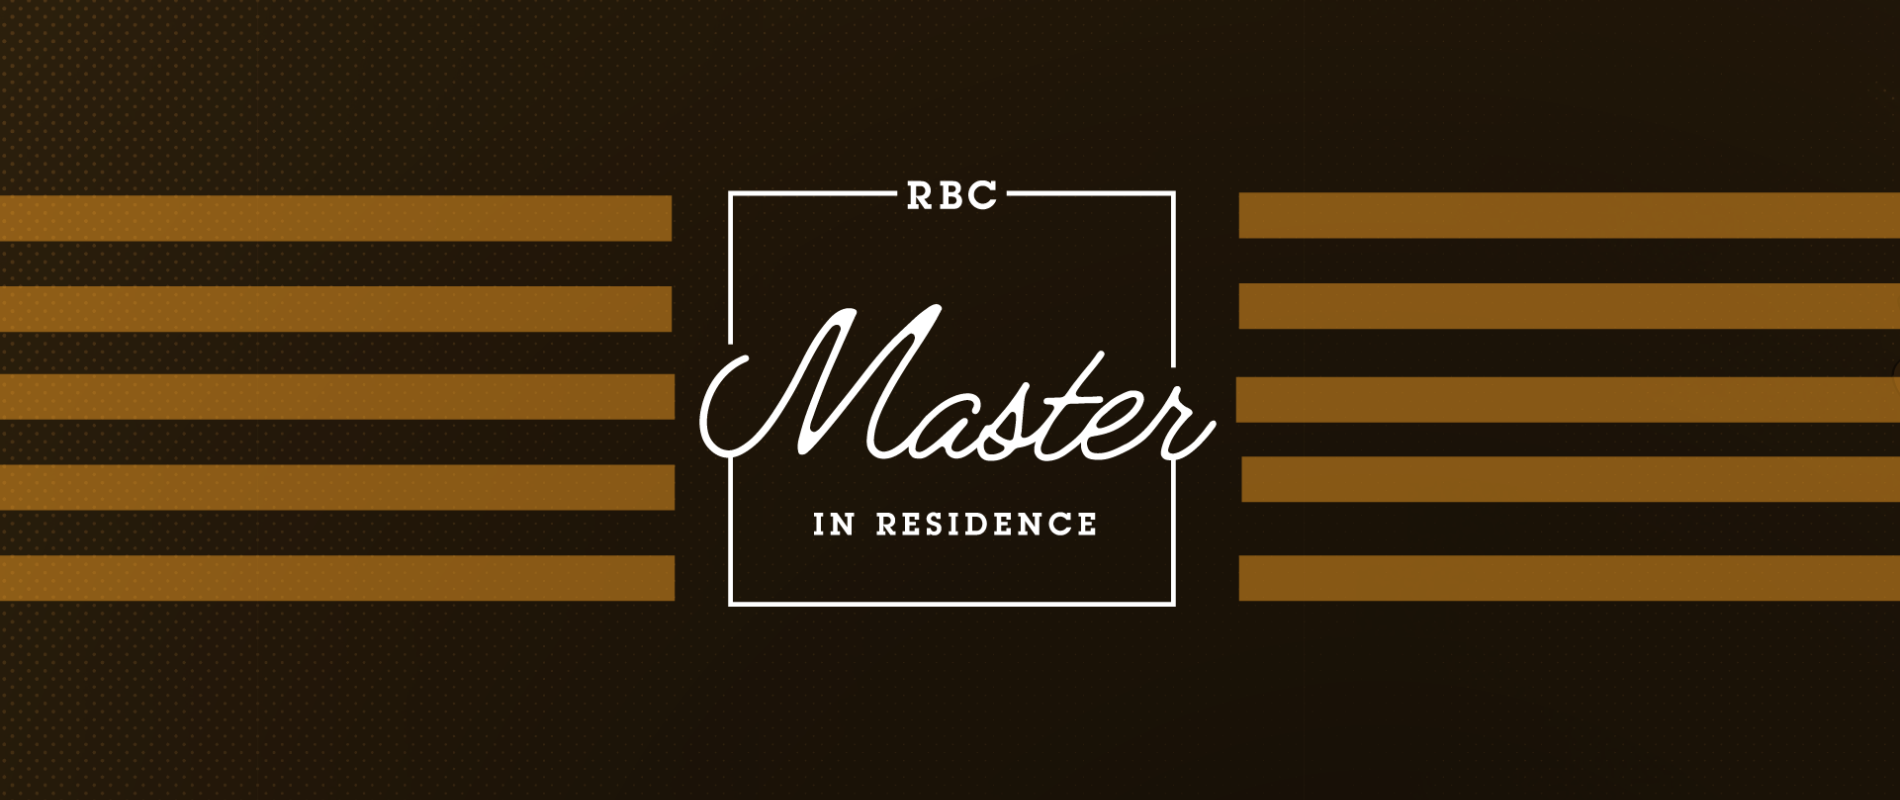 RBC Master in Residence